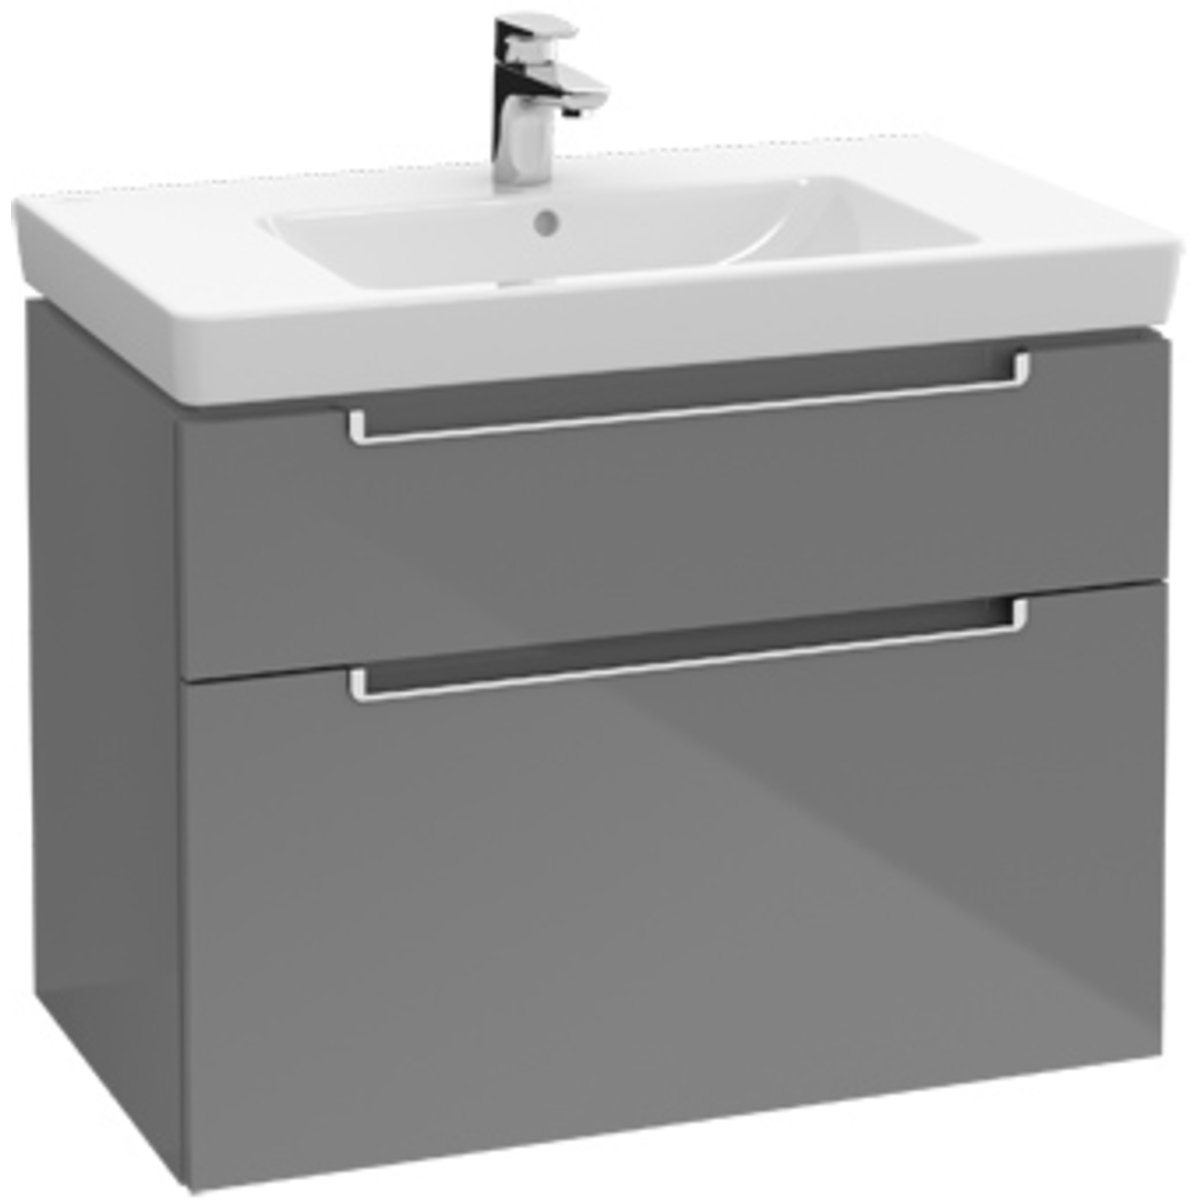 villeroy boch subway 2 0 meuble sous lavabo avec 2 tiroirs pour lavabo. Black Bedroom Furniture Sets. Home Design Ideas